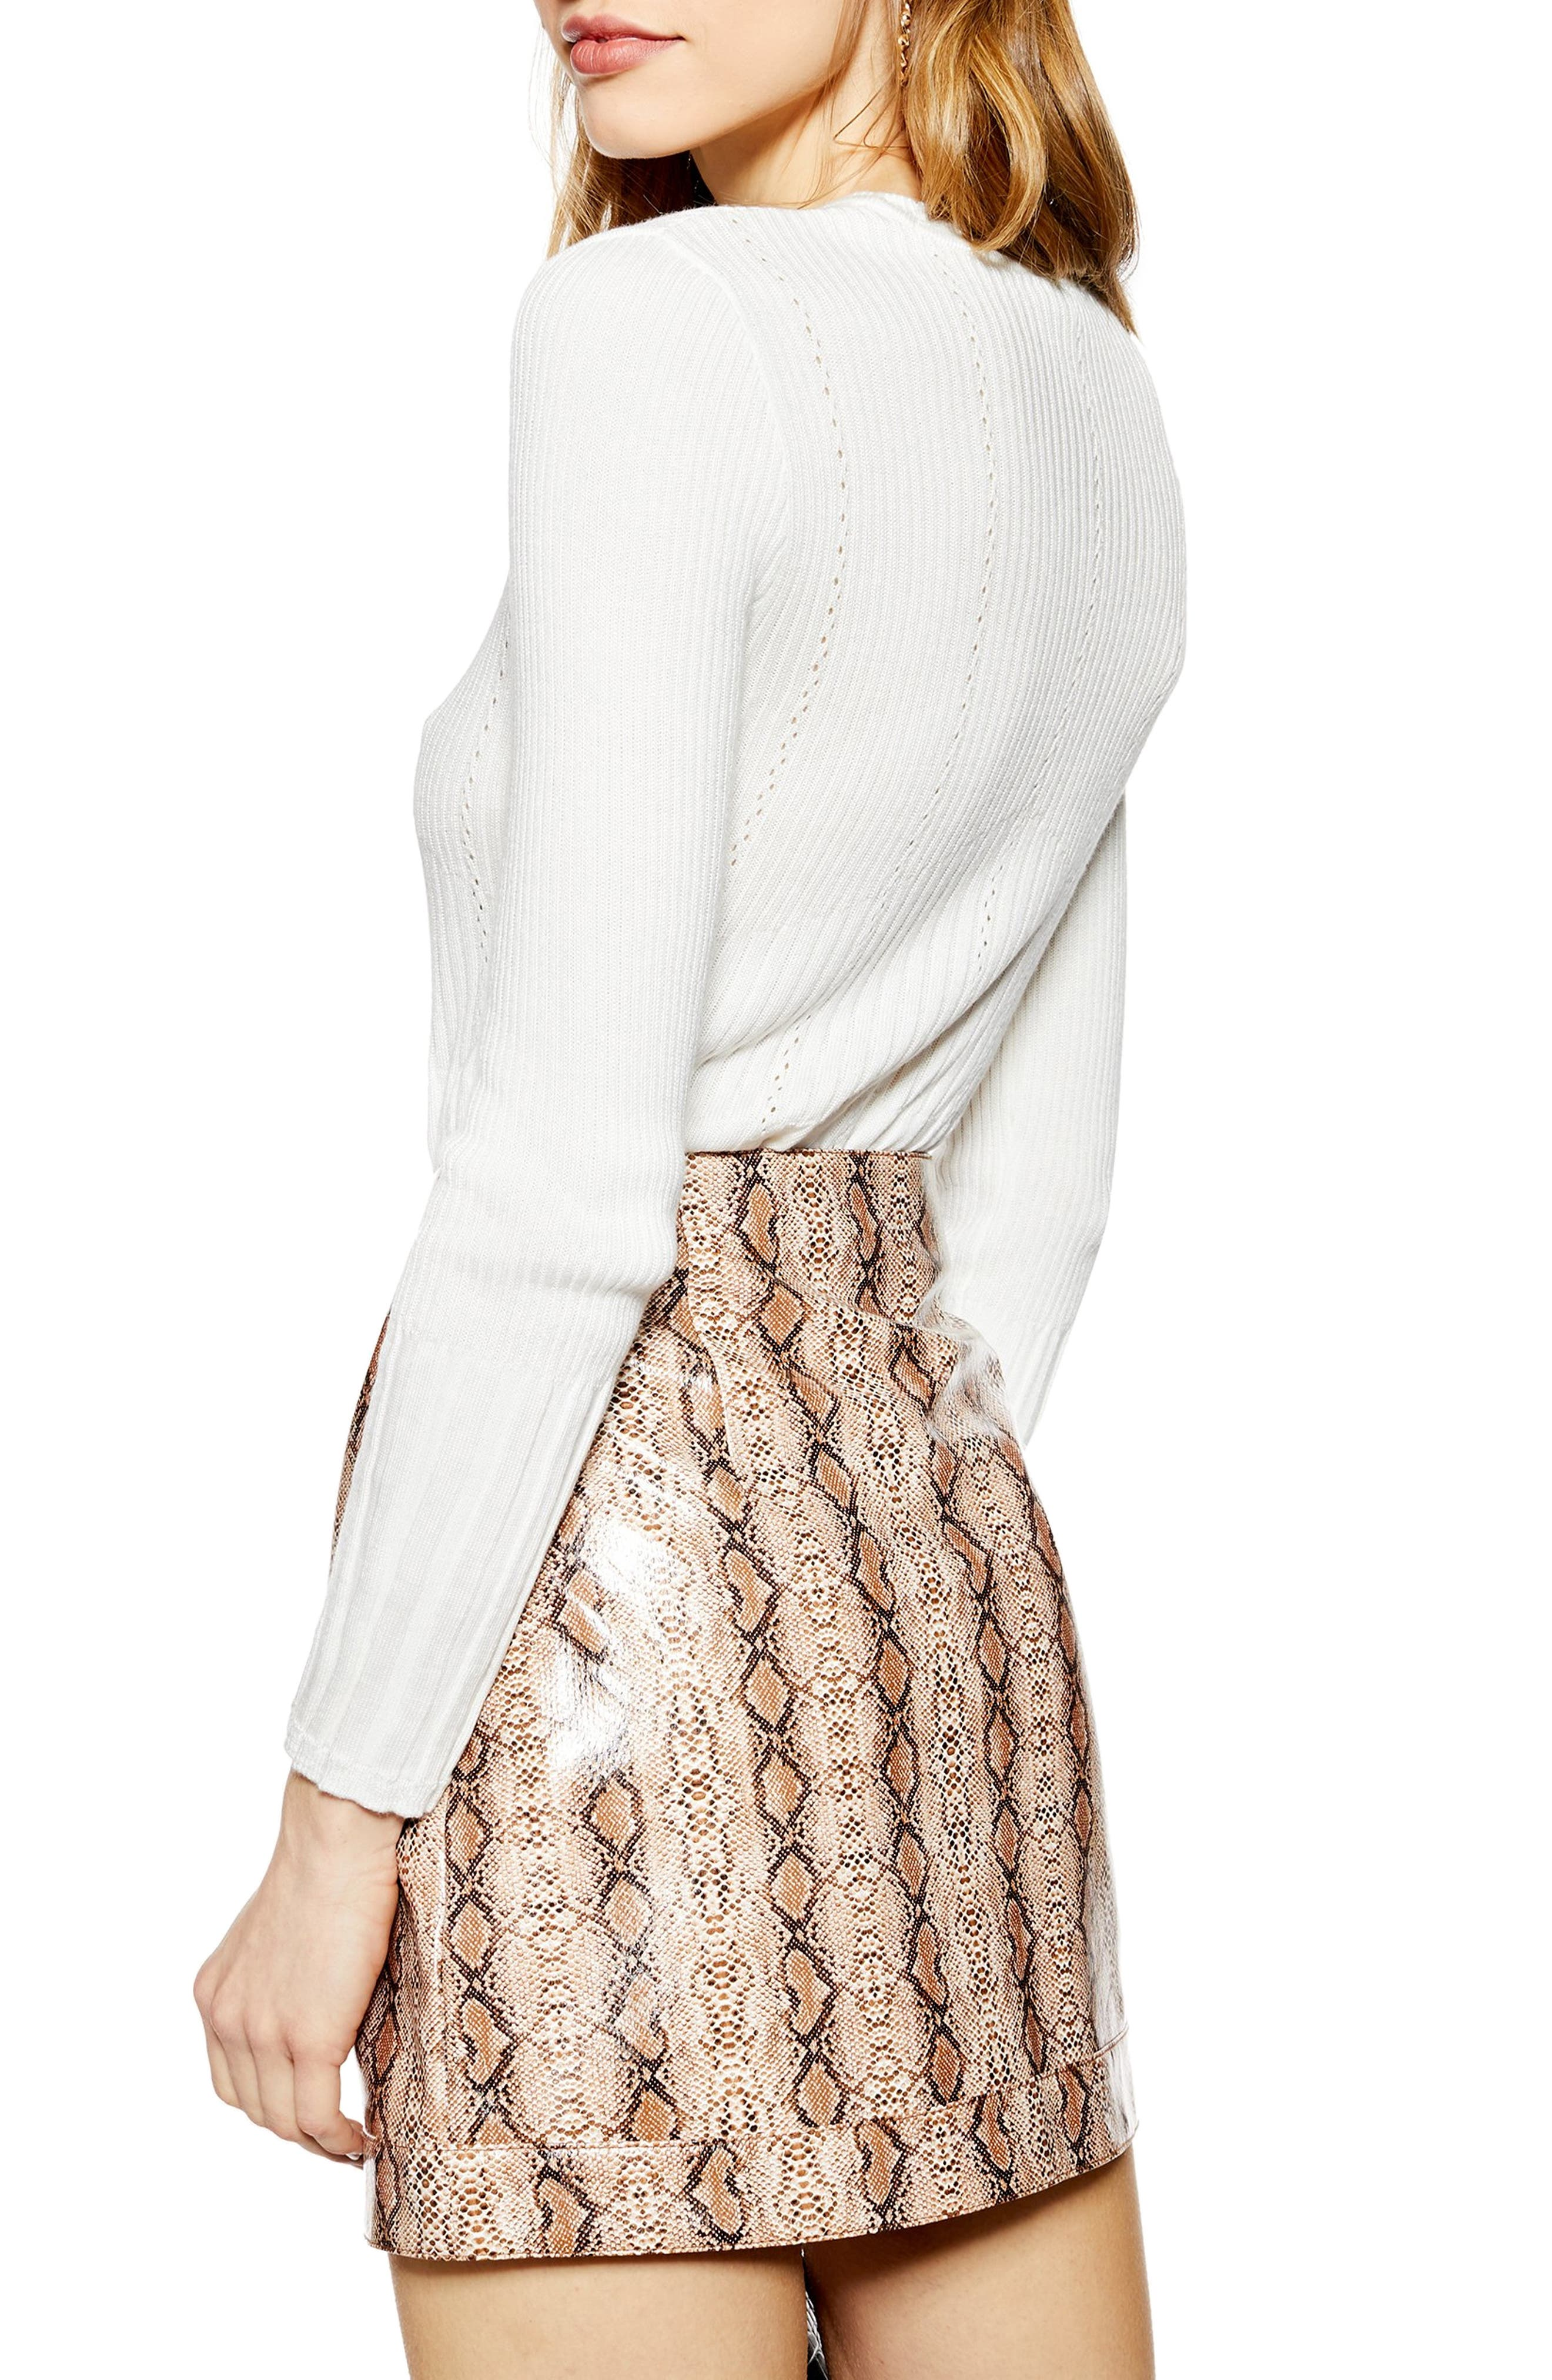 TOPSHOP, Pointelle Sweater, Alternate thumbnail 2, color, IVORY